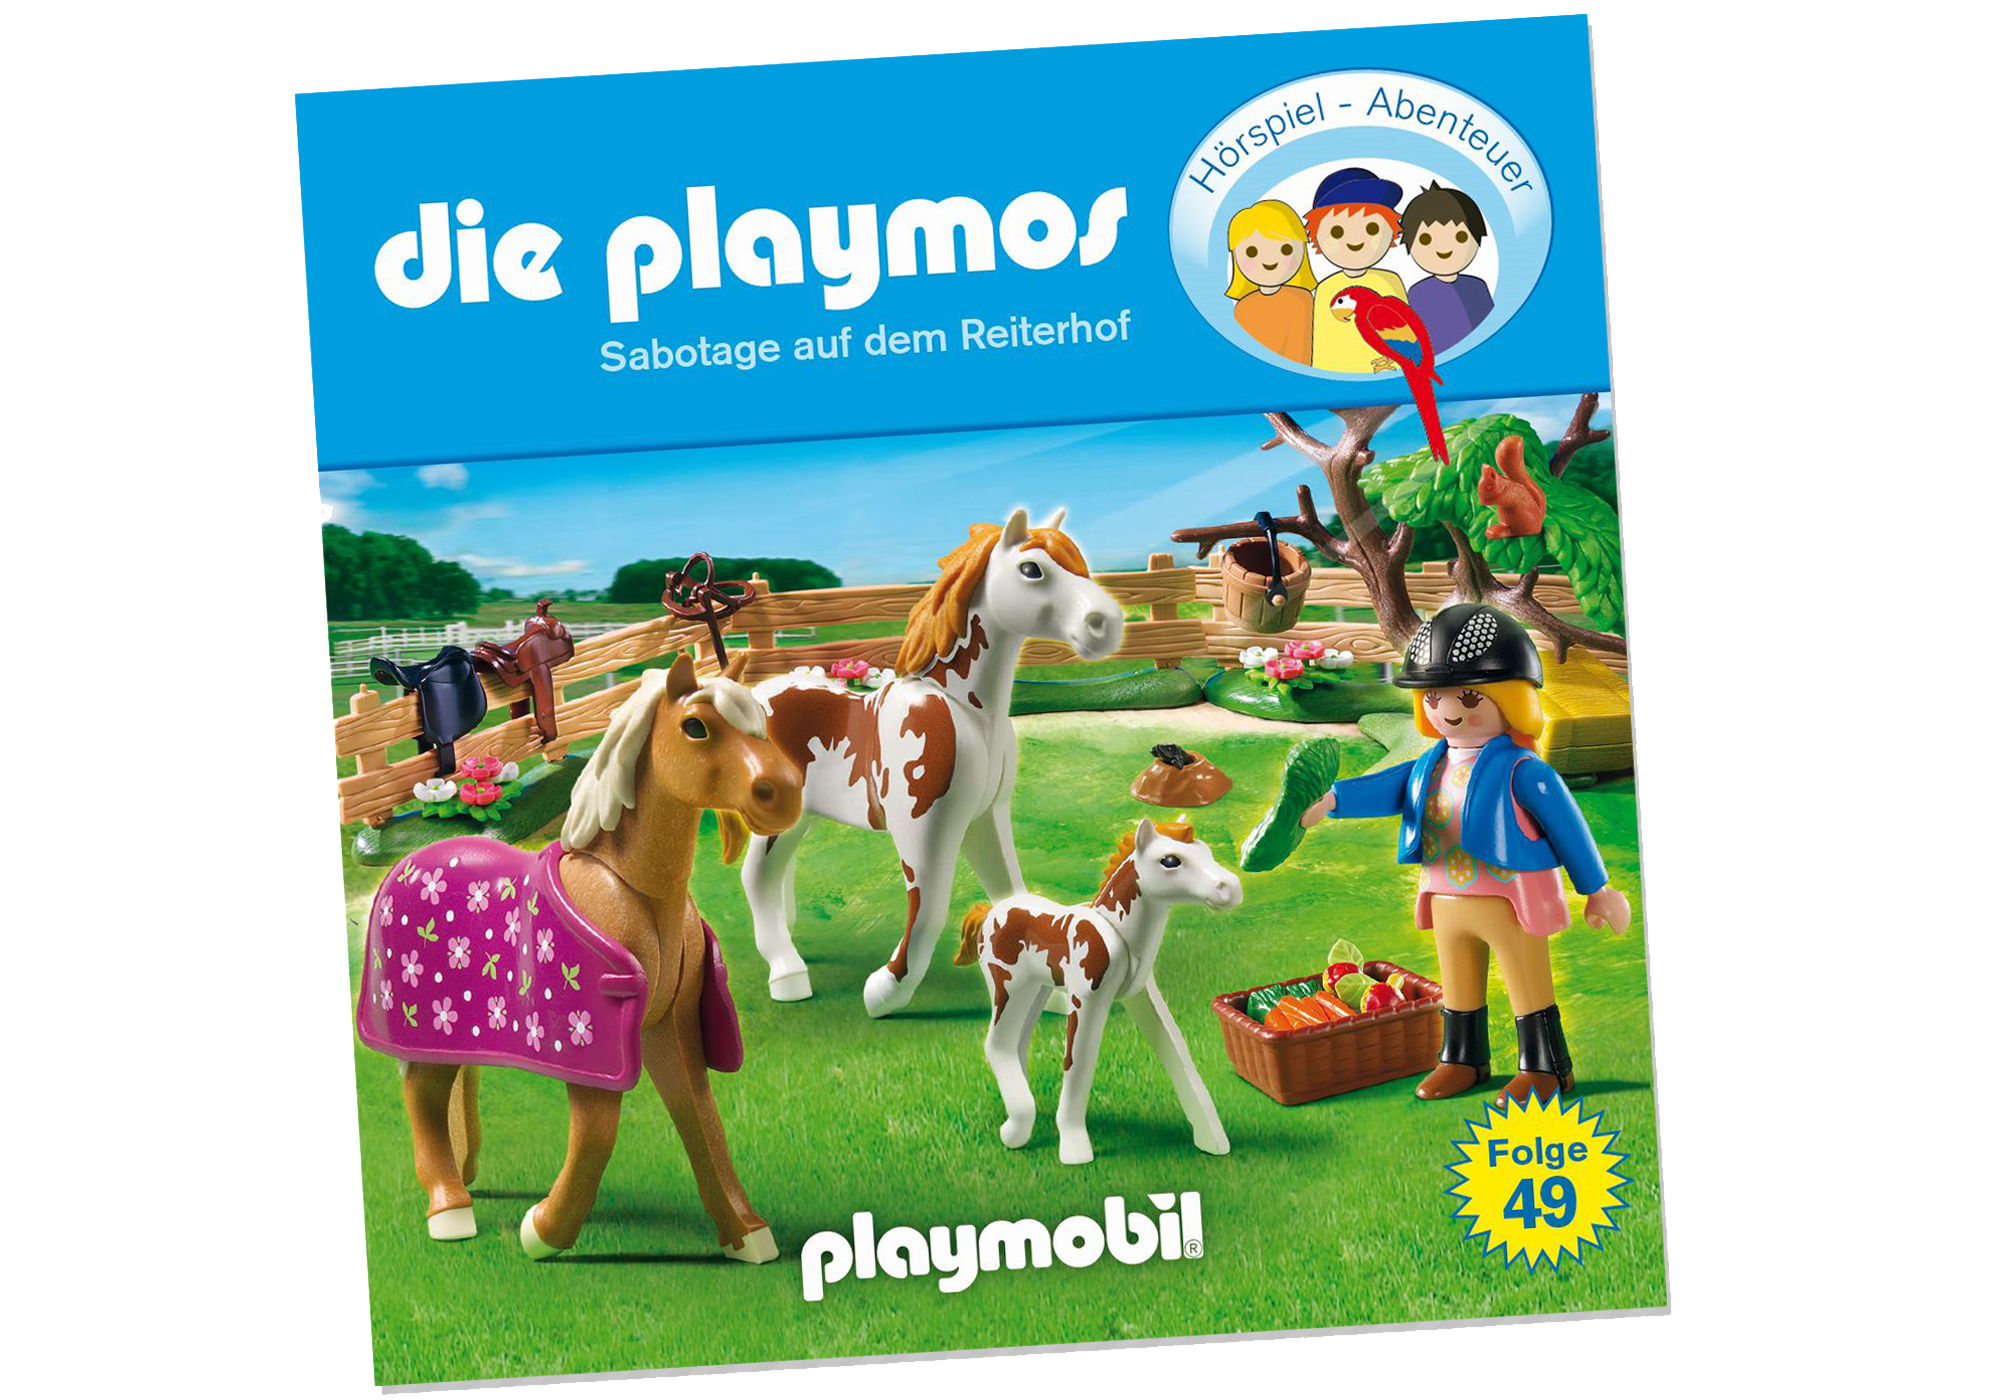 http://media.playmobil.com/i/playmobil/80256_product_detail